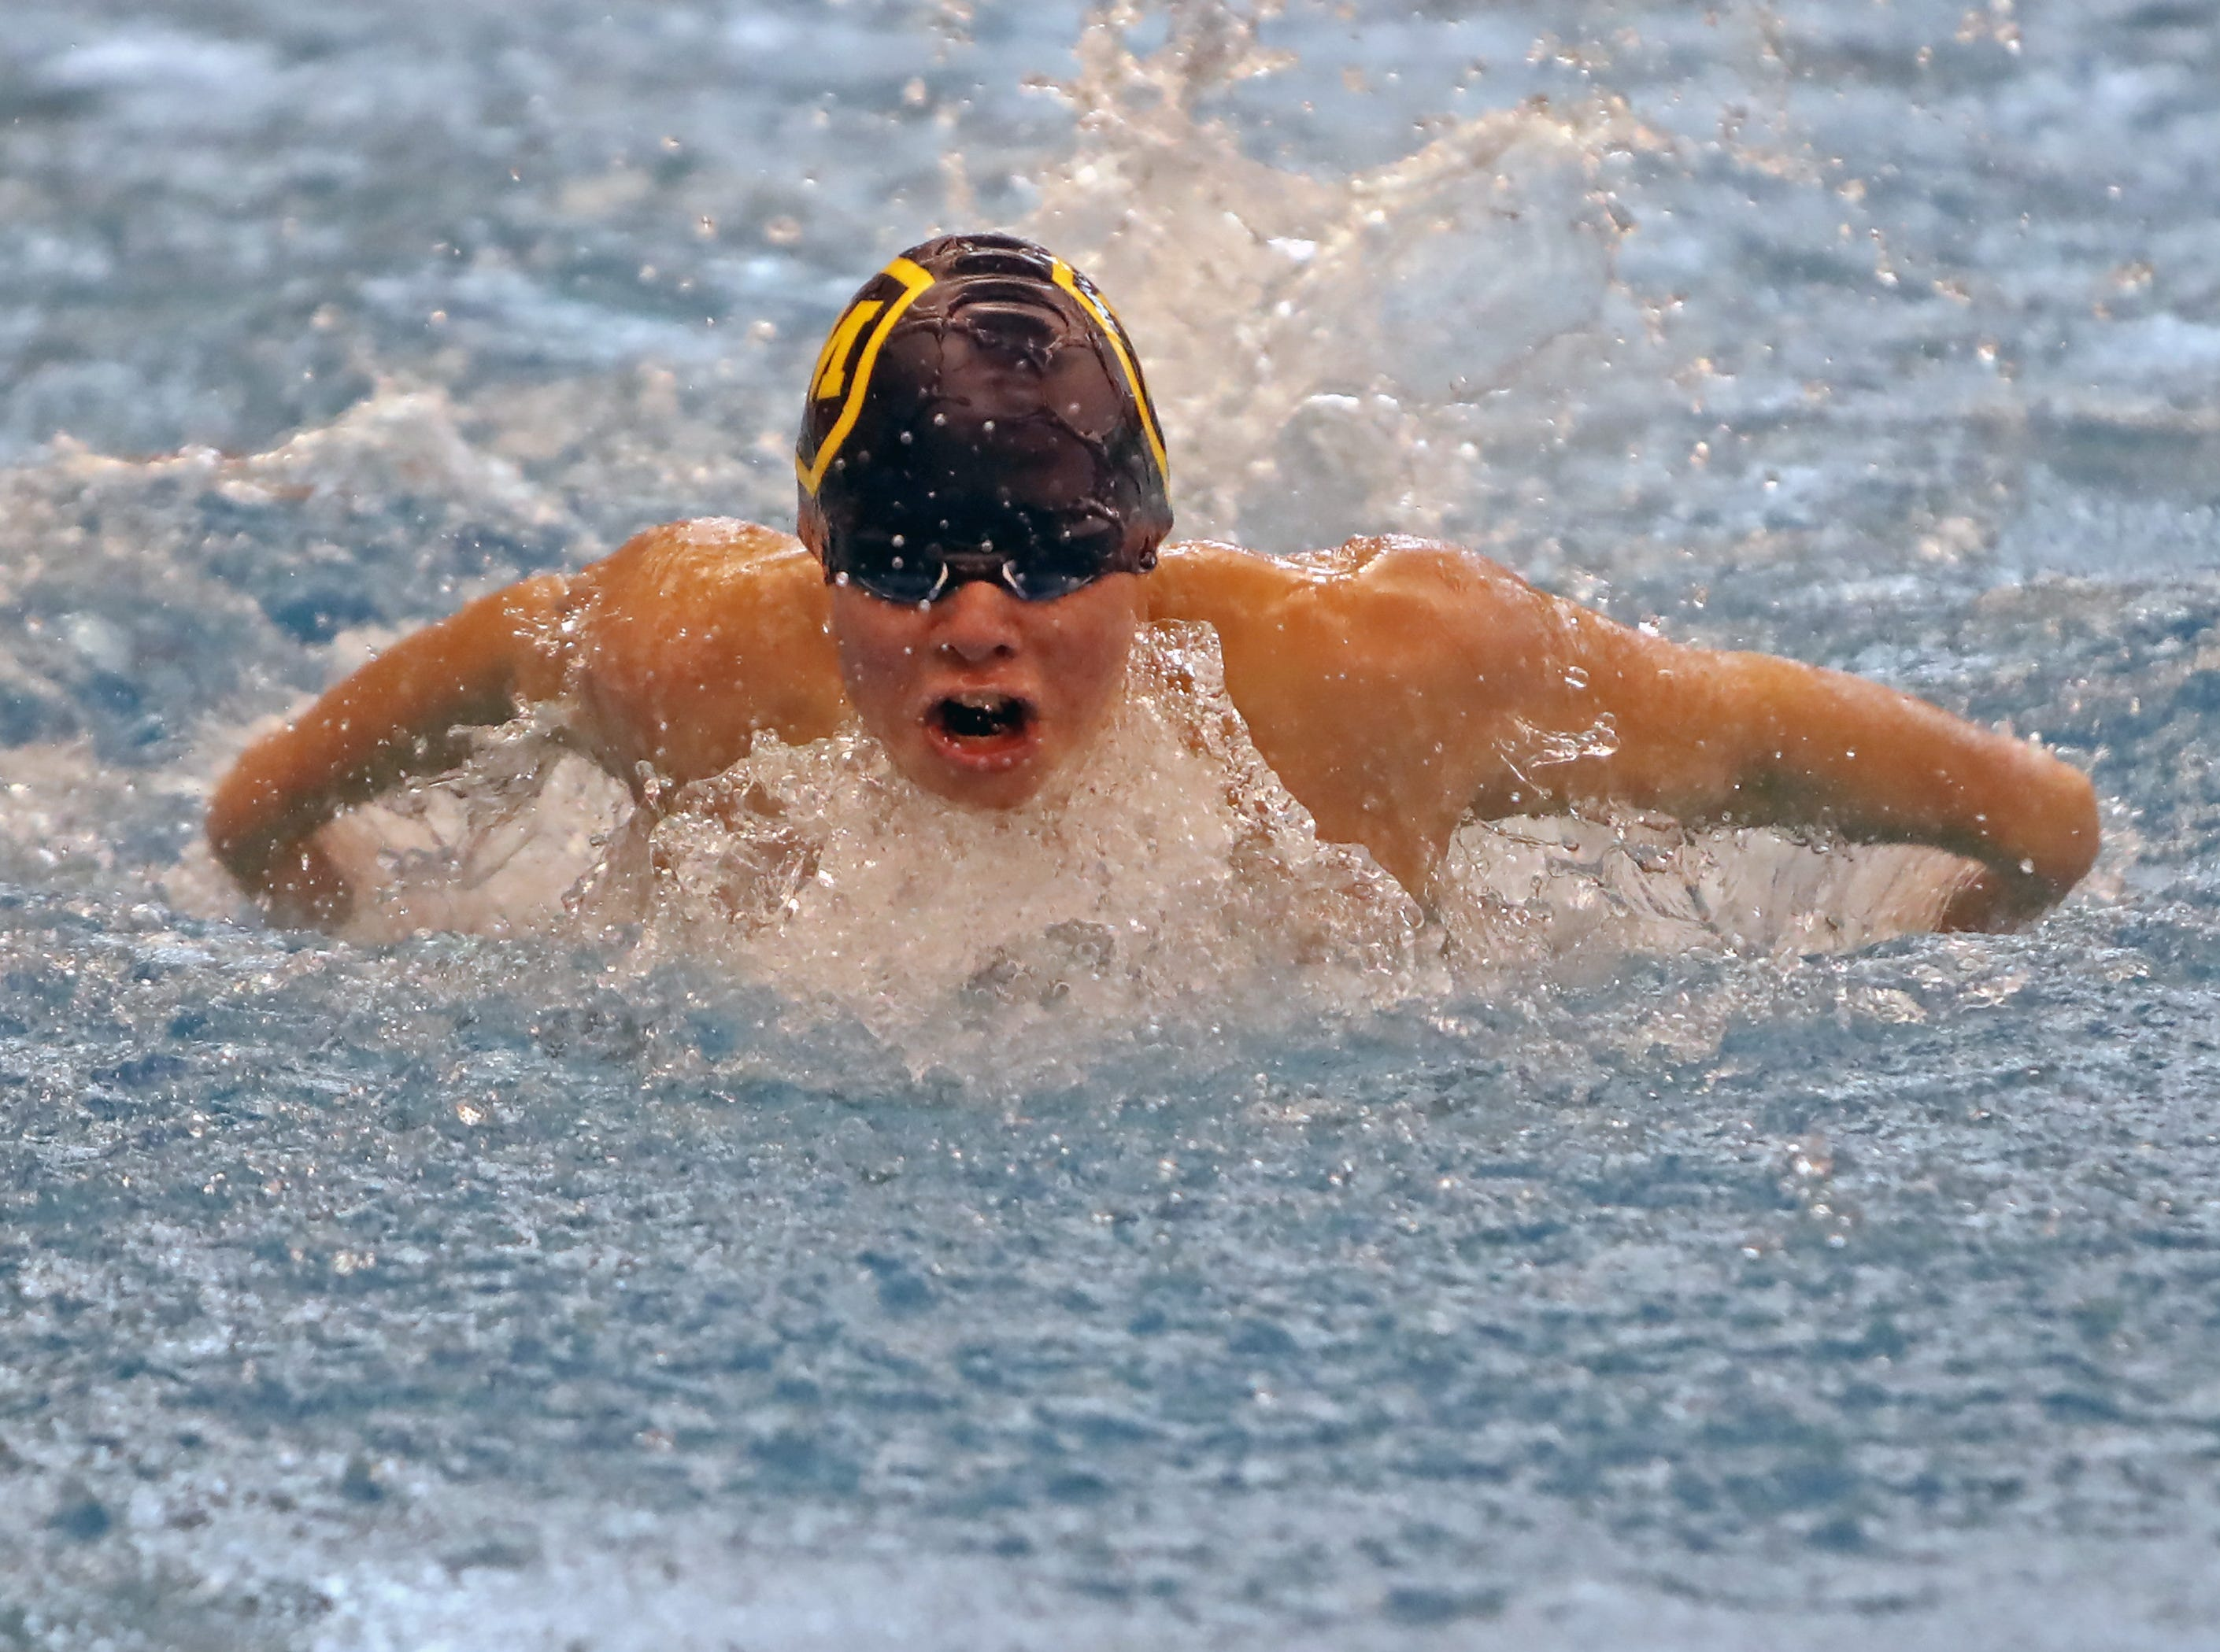 Mitch Garboden from Moeller competes in the boys 100-yard butterfly at the SW Ohio Swim Classic at Mason.